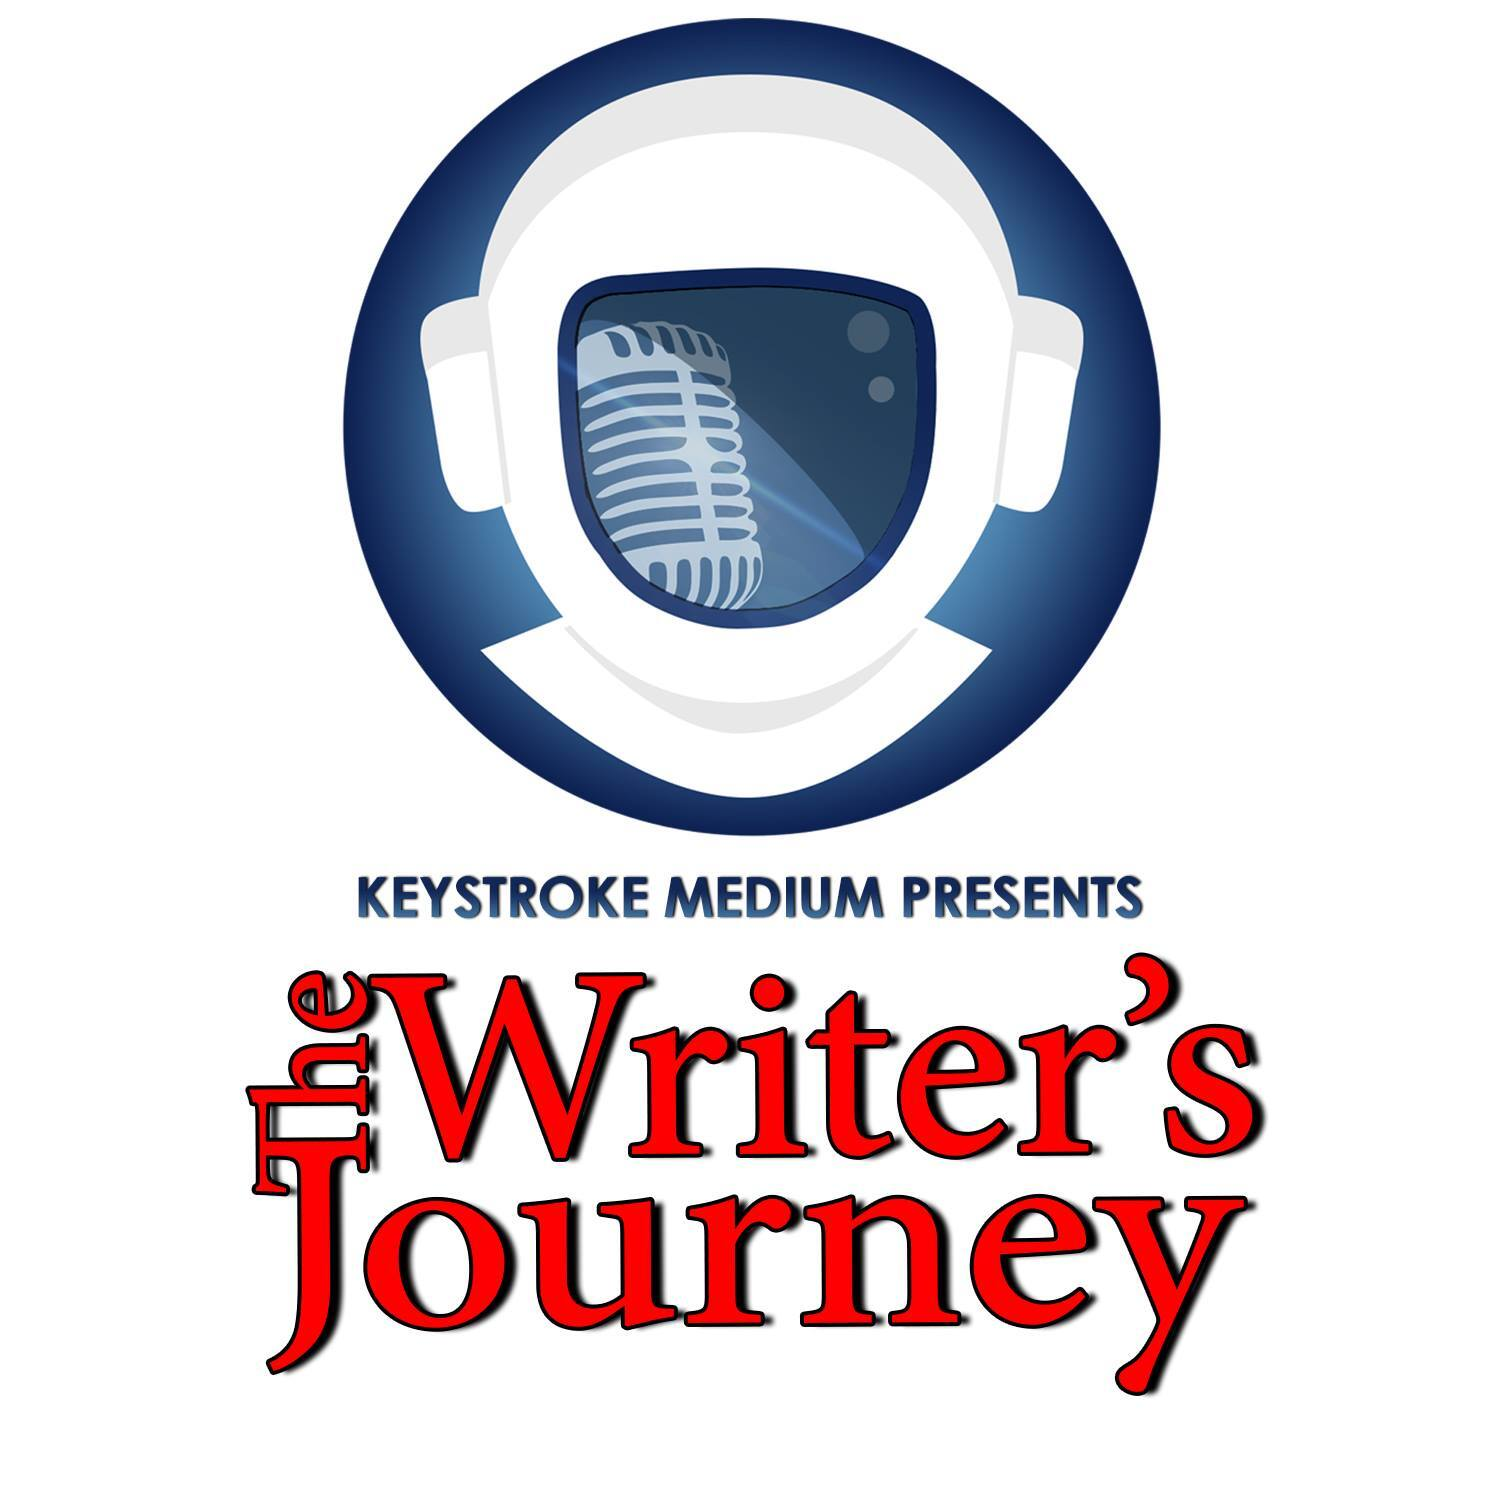 Authors Building Facebook Communities with Kevin Tumlinson - The Writer's Journey, Ep 1.19